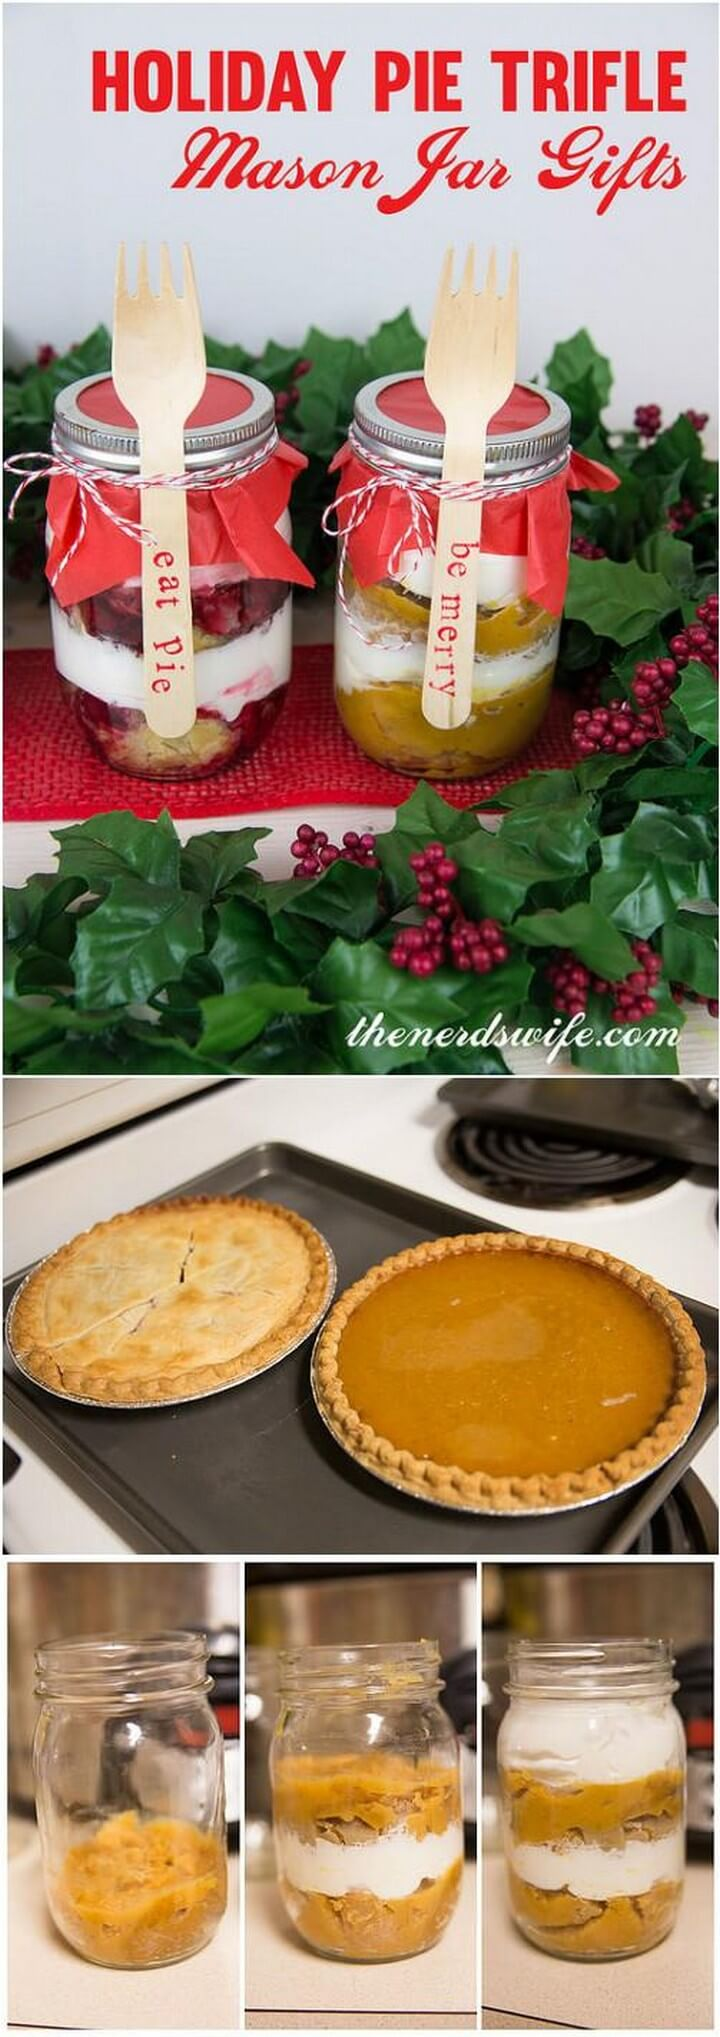 DIY Great Holiday Pie Trifle Mason Jar Gifts